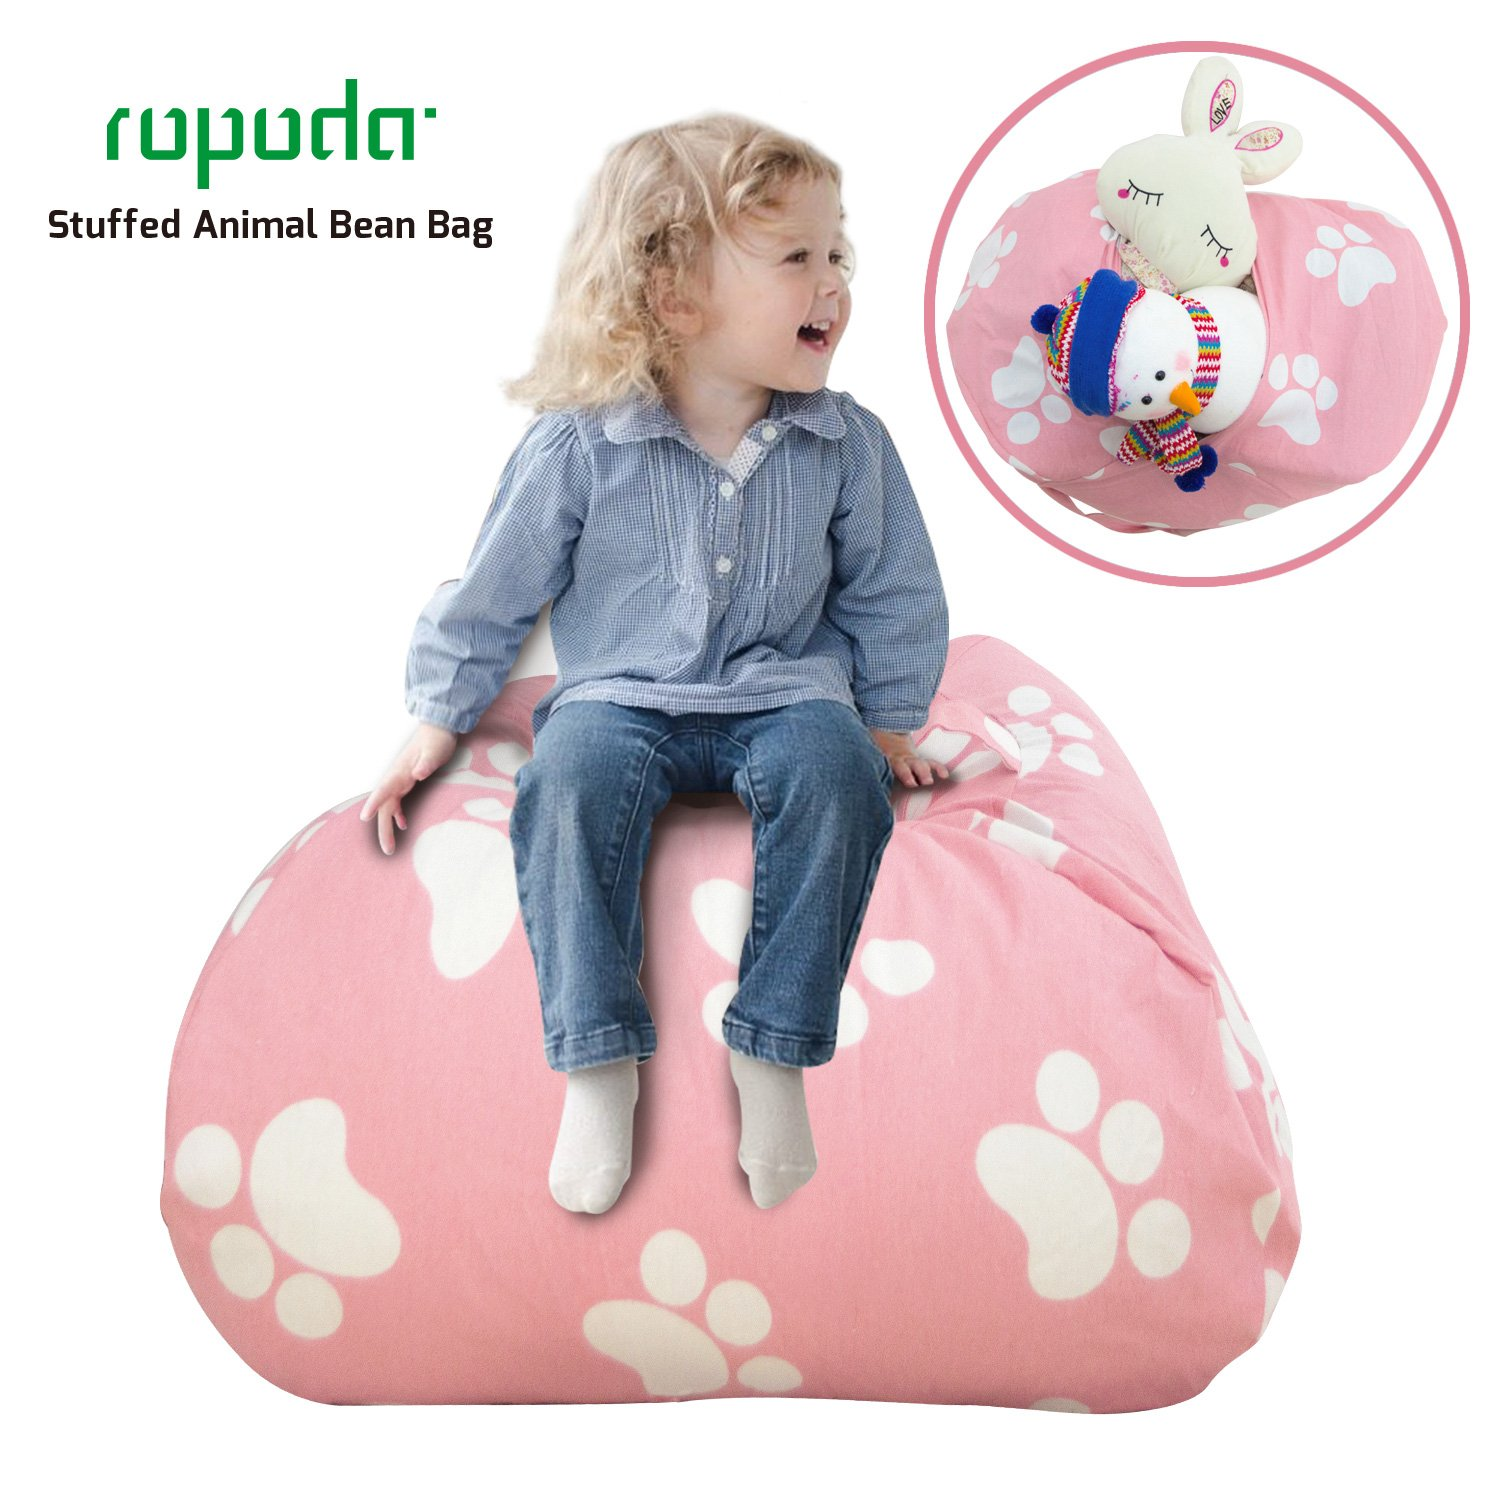 ROPODA Extra Large Kids Stuffed Animal Storage Bean Bag Cover-100% Cotton Canvas Storage Bag Perfect Storage Solution for Toys, Clothes,Covers or Blankets (pink footprint, 38inches)